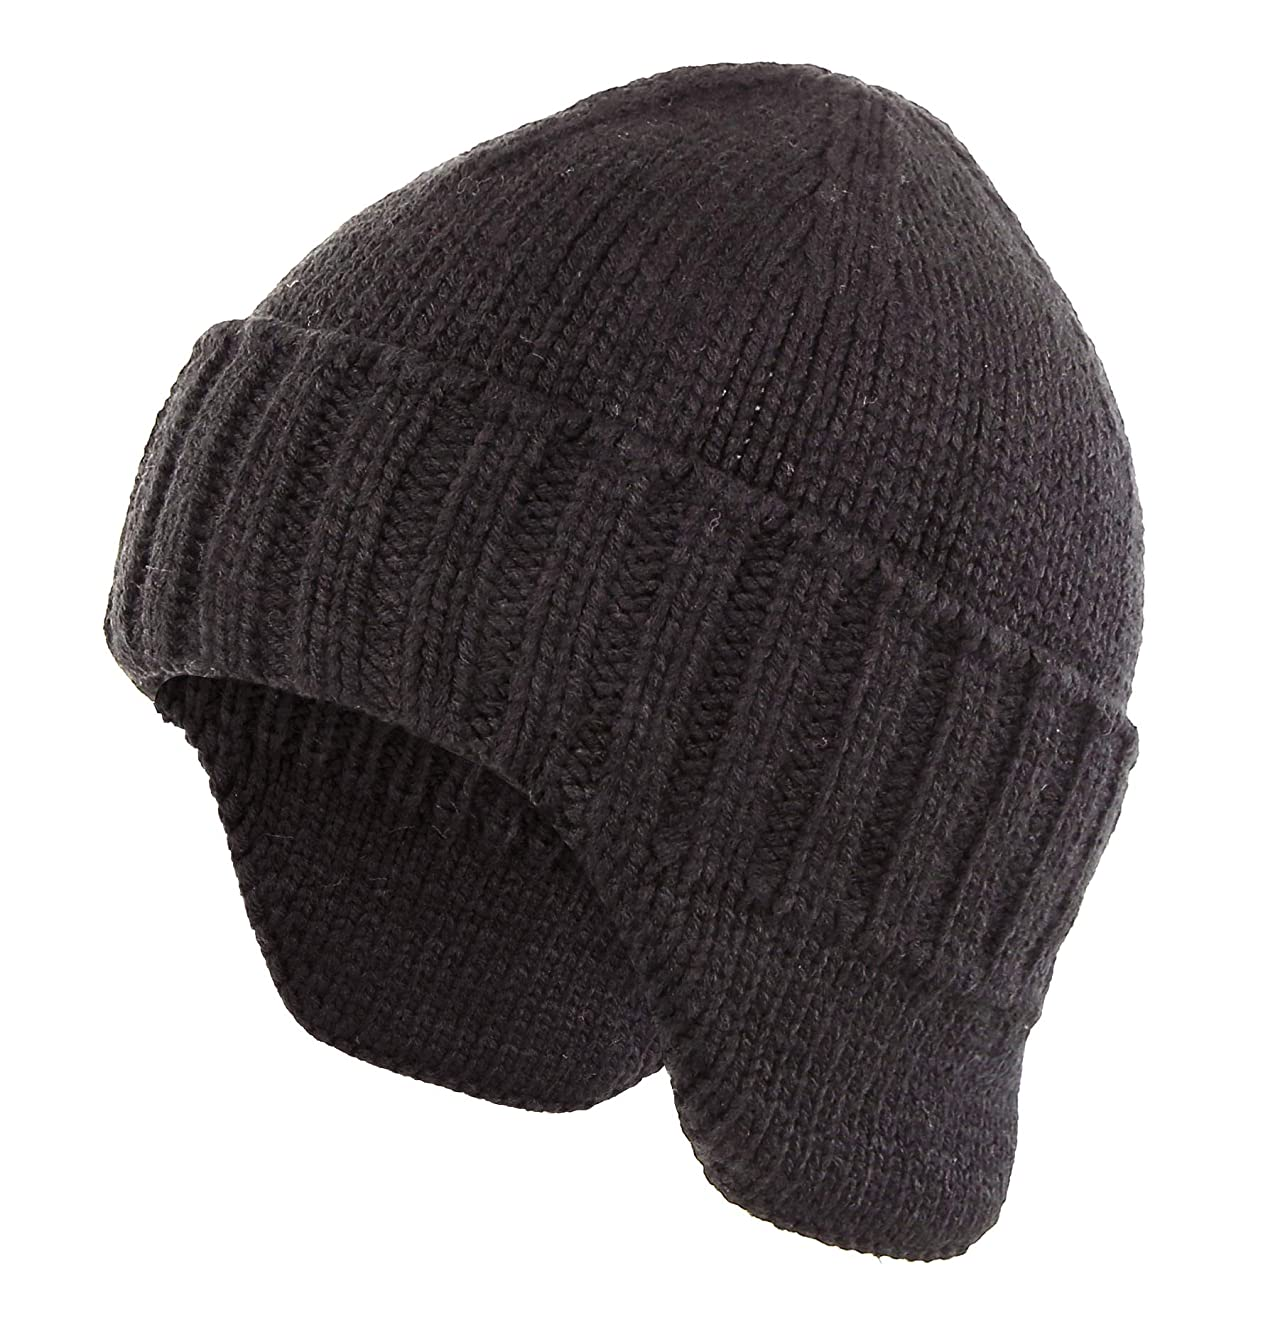 8eea8063699eb9 ... Home Prefer Mens Winter Hat Knit Earflap Hat Stocking Caps with Ears  Warm Hat